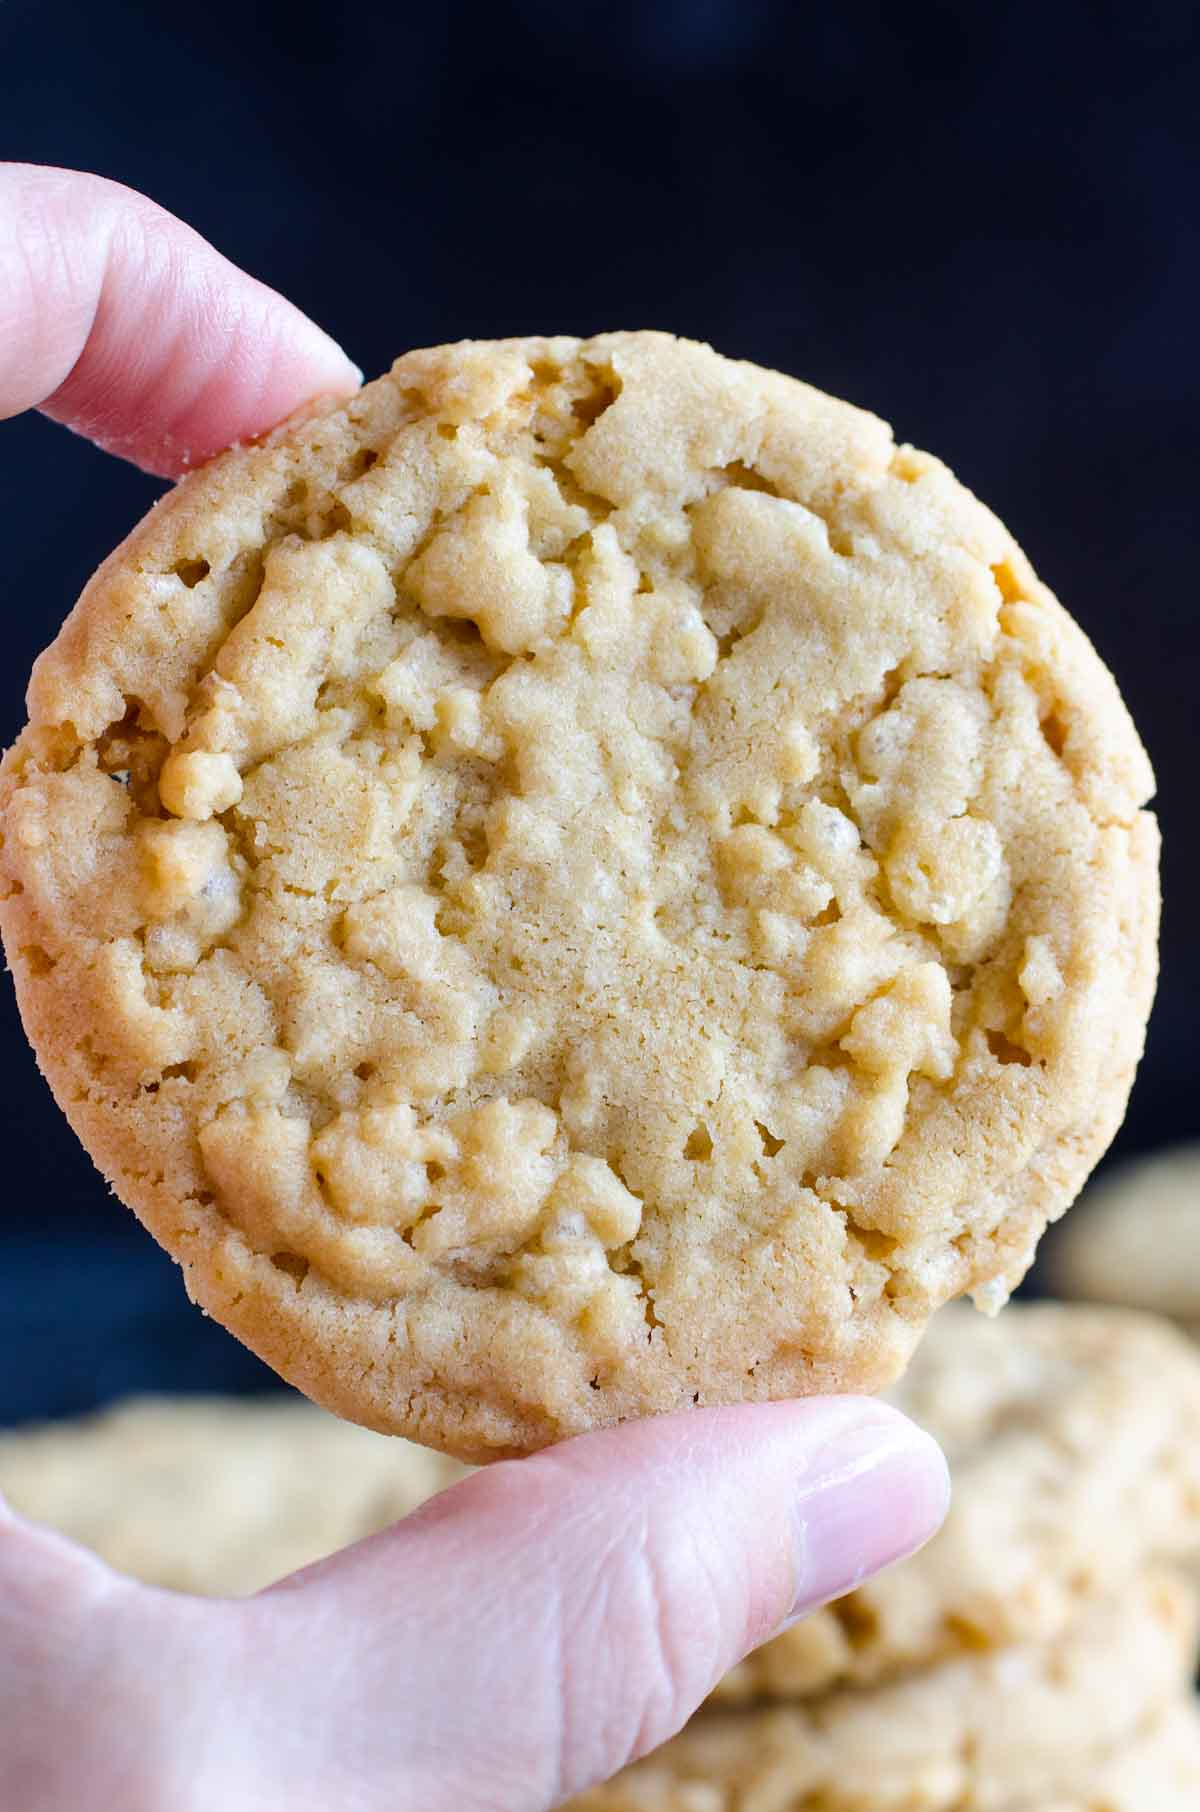 holding round cookie up close